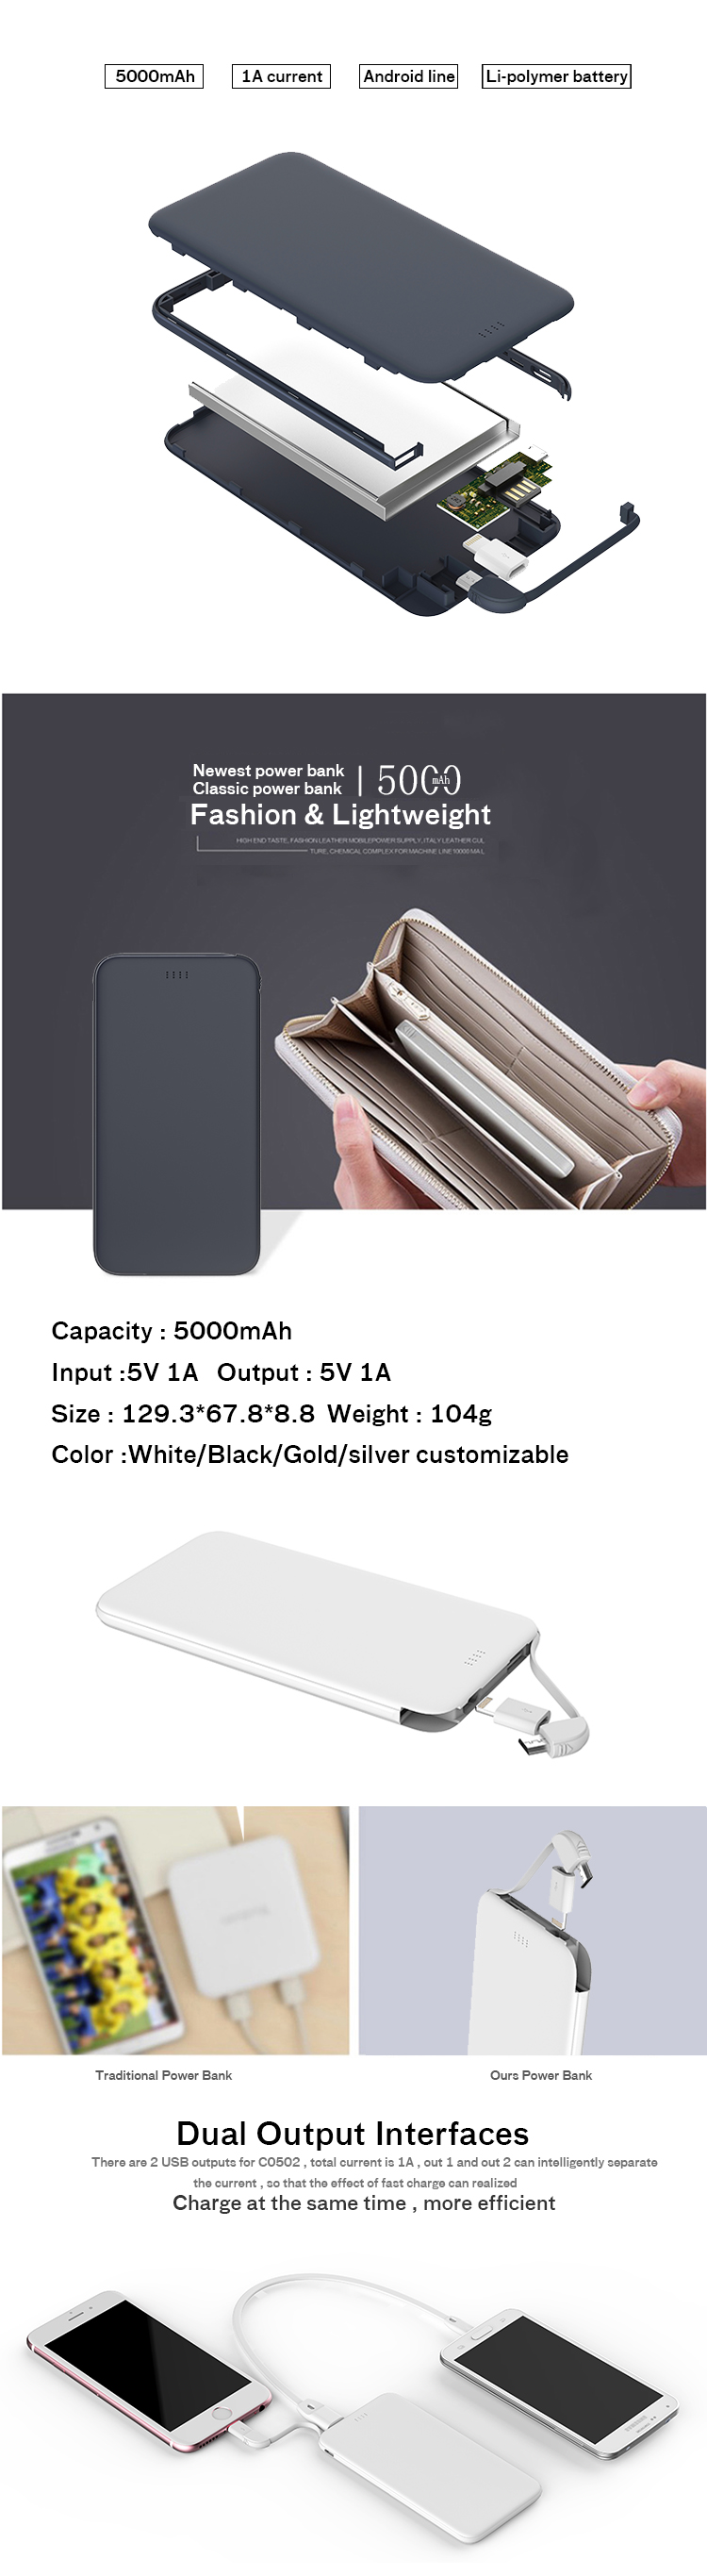 Powerbank charger Wholesale for mobile phone portable slim powerbank 5000mah mini powerbank